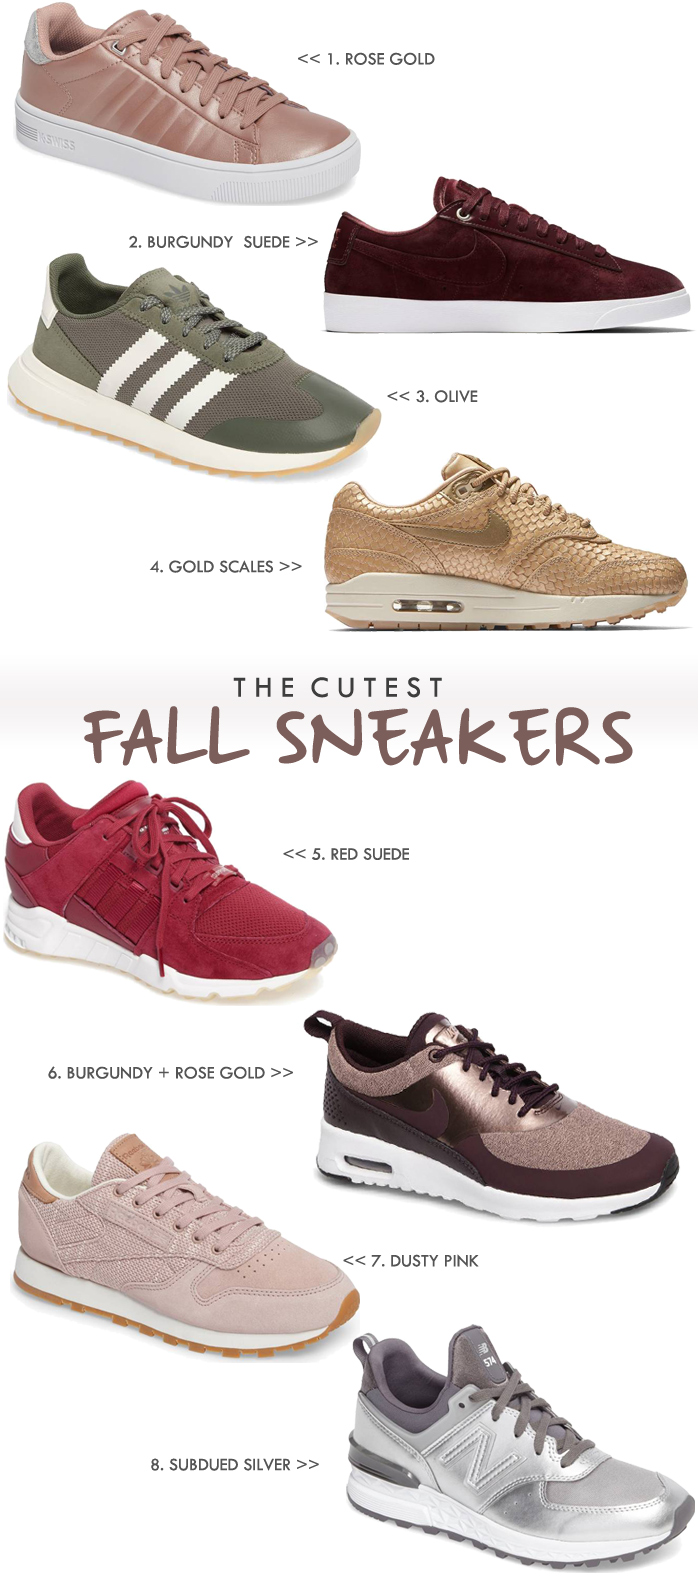 We show you the best shoes and sneakers to wear with Fall Peach athleisure apparel. These stylish, comfortable shoes will work with your whole closet.